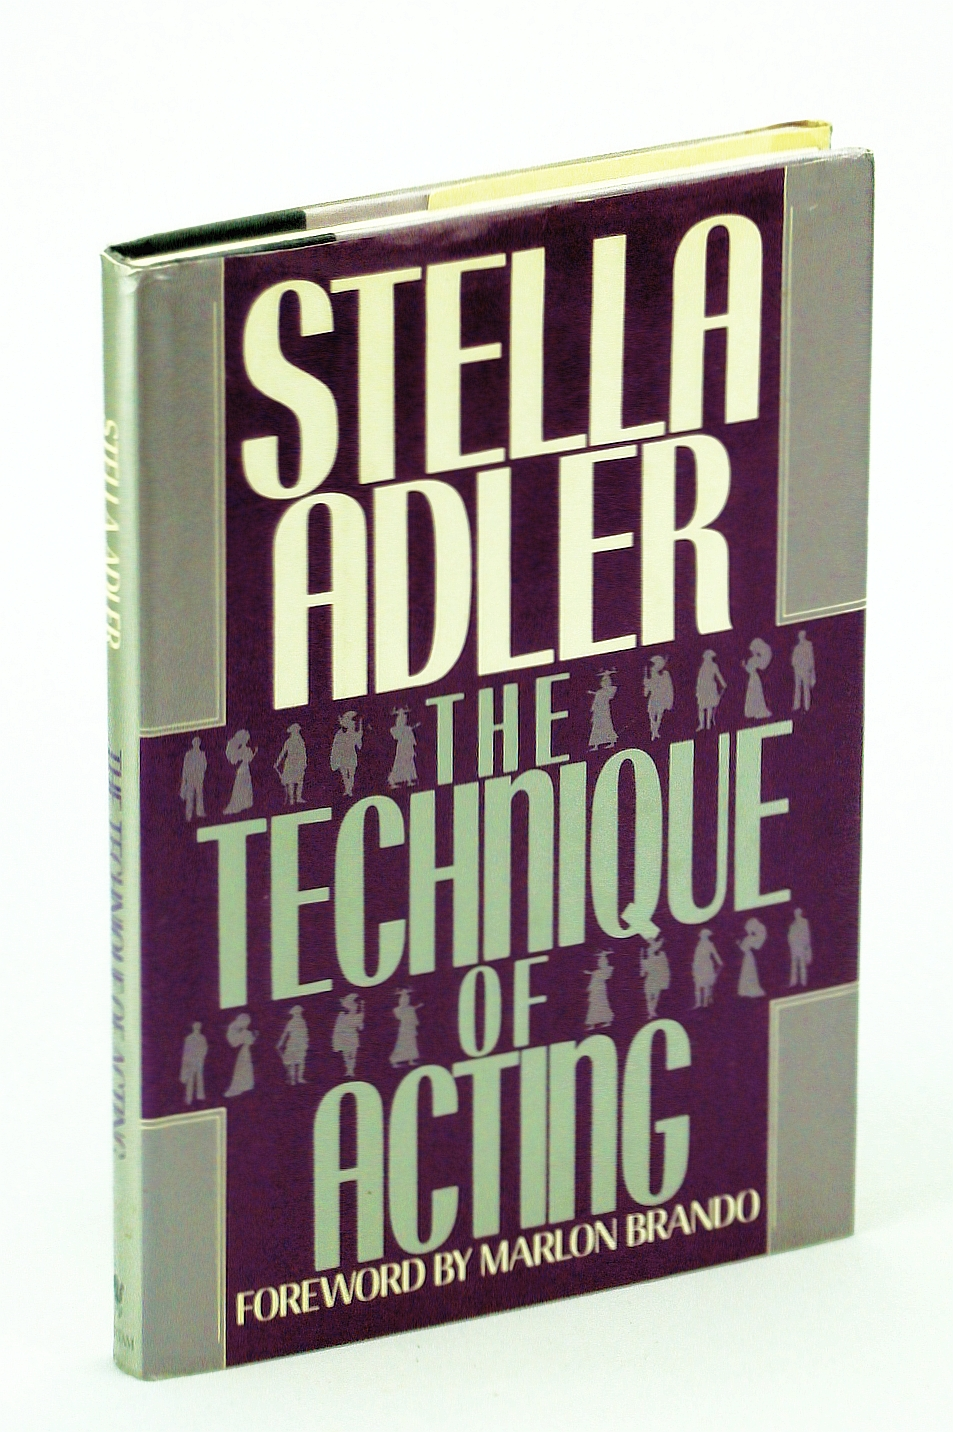 Image for The Technique of Acting